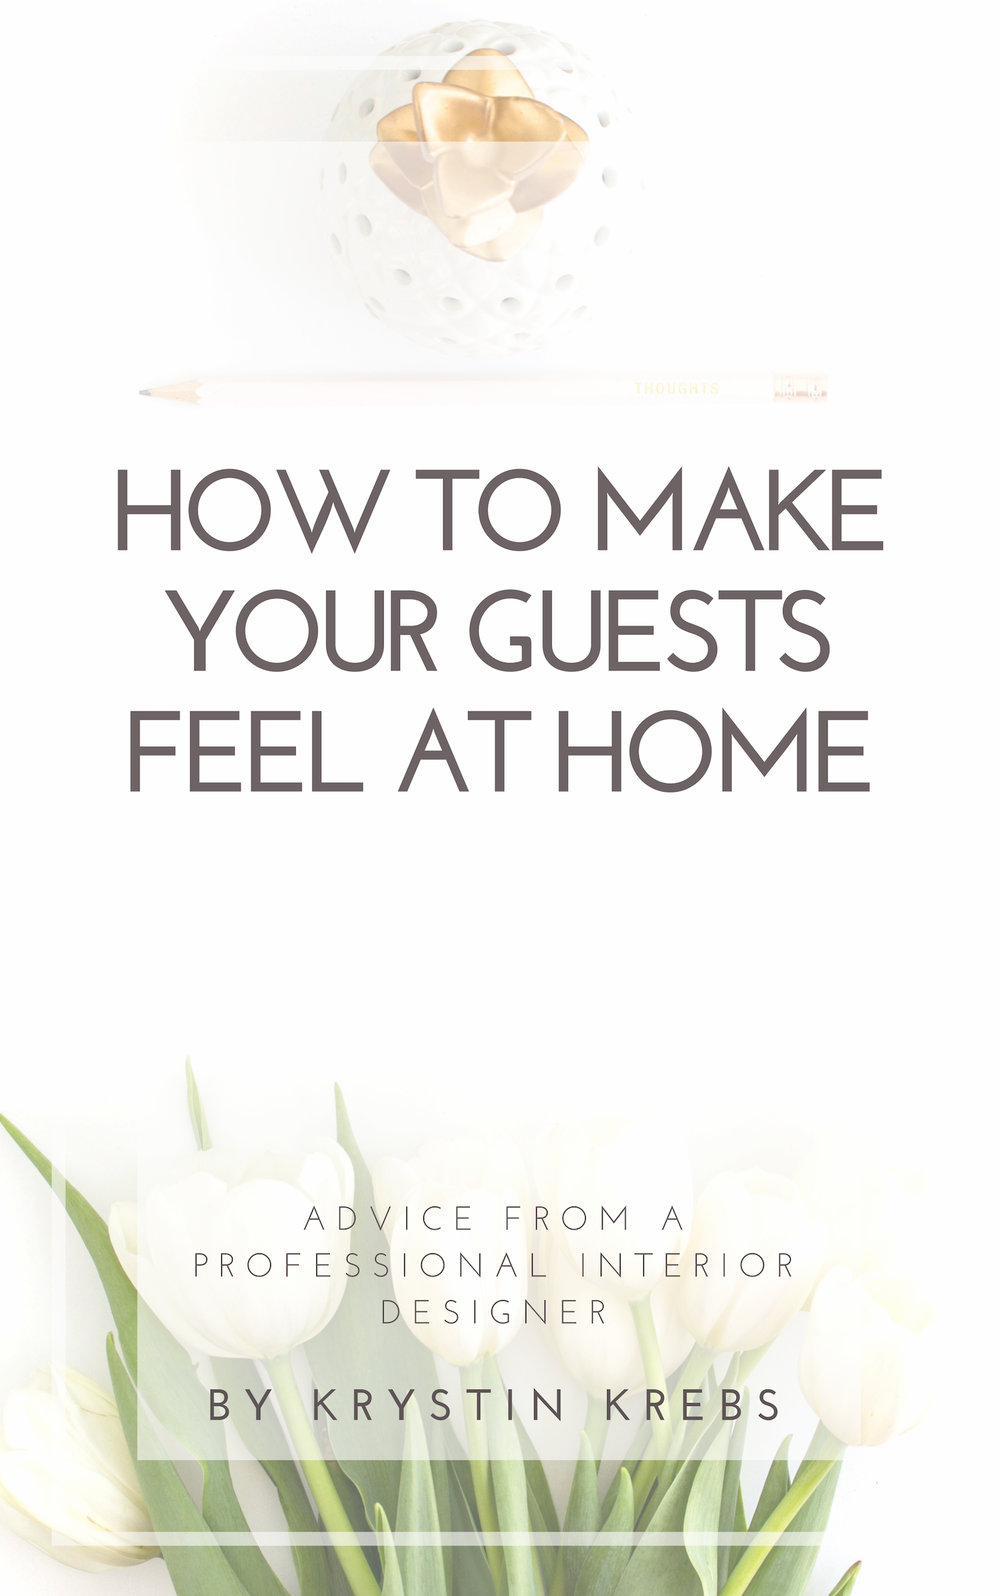 How to make your guests feel at home.jpg